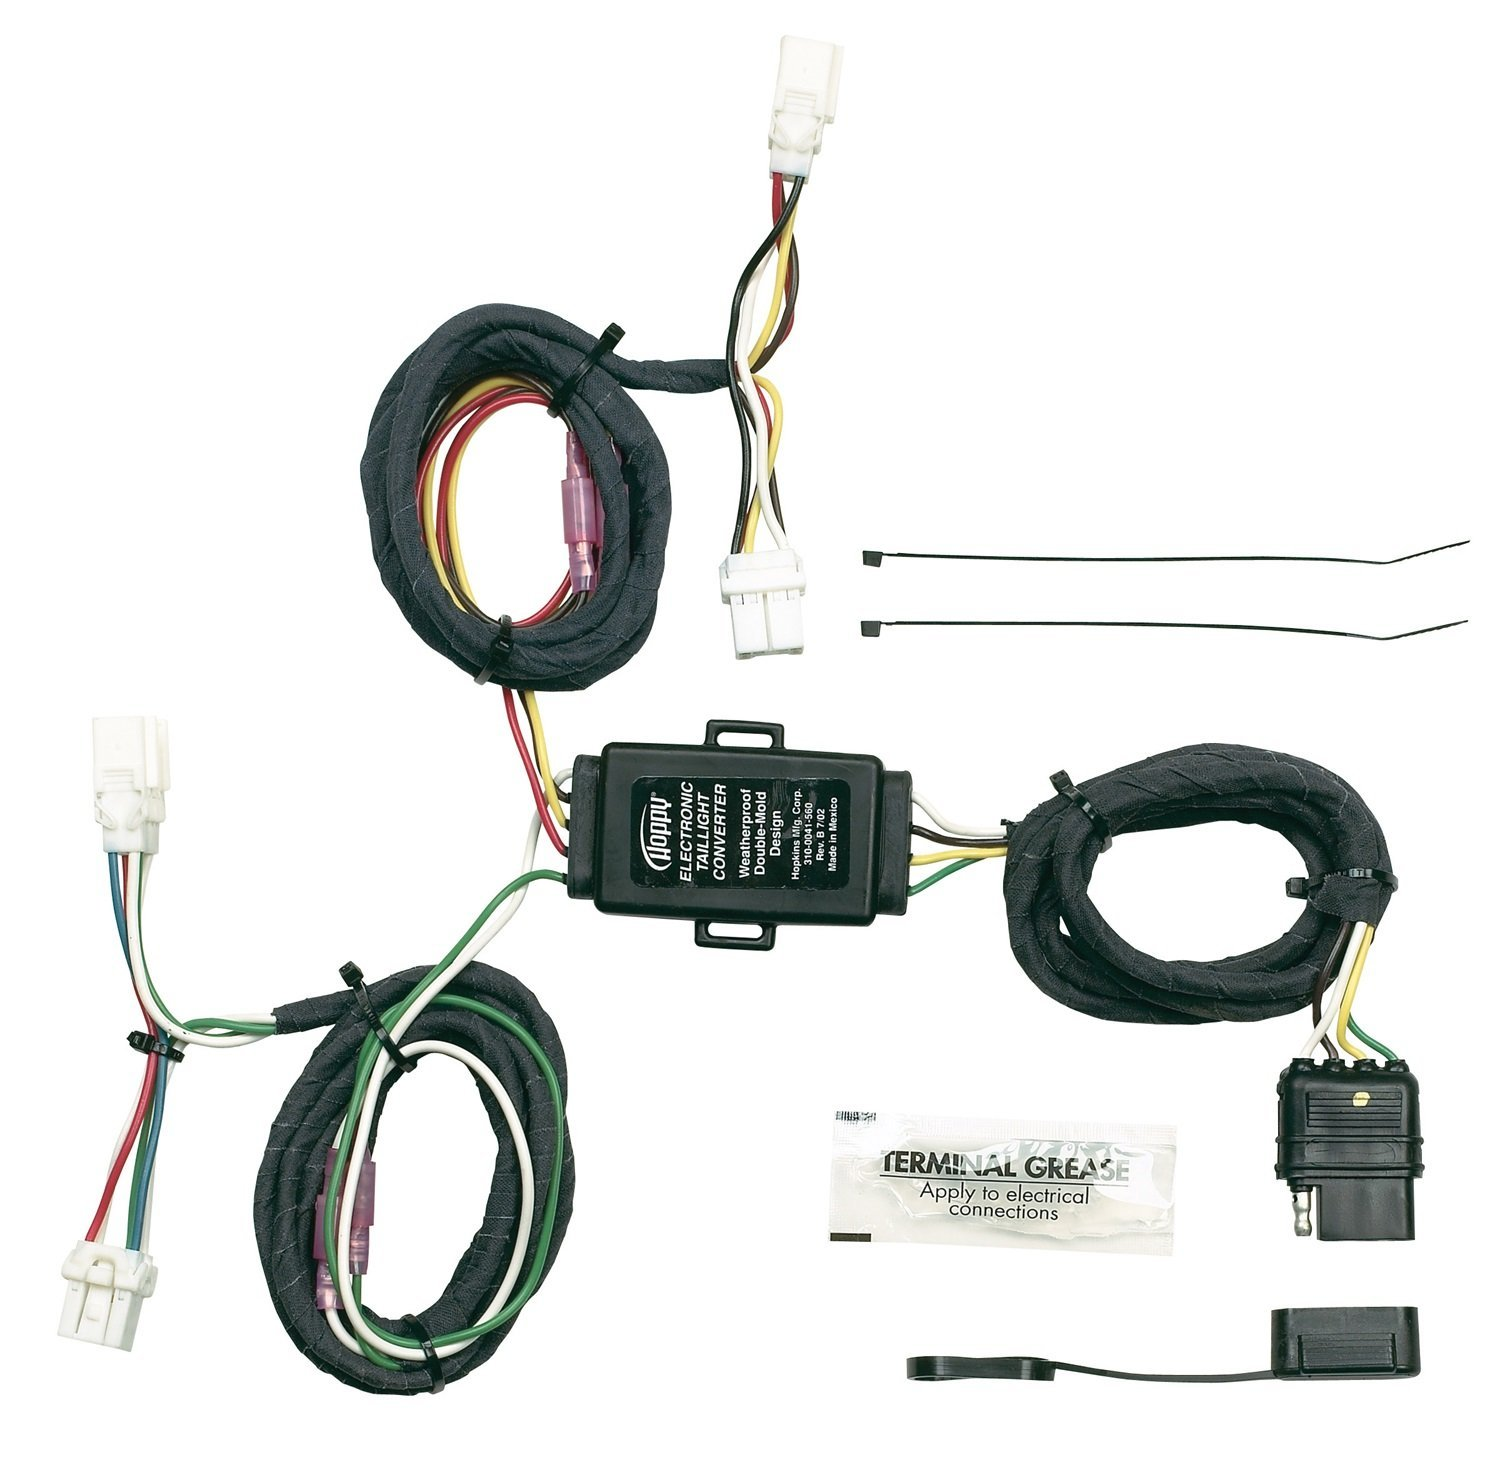 hight resolution of hopkins 43565 plug in simple vehicle wiring kit t connectors allow you to connect your trailer s wiring system into your vehicle s wiring